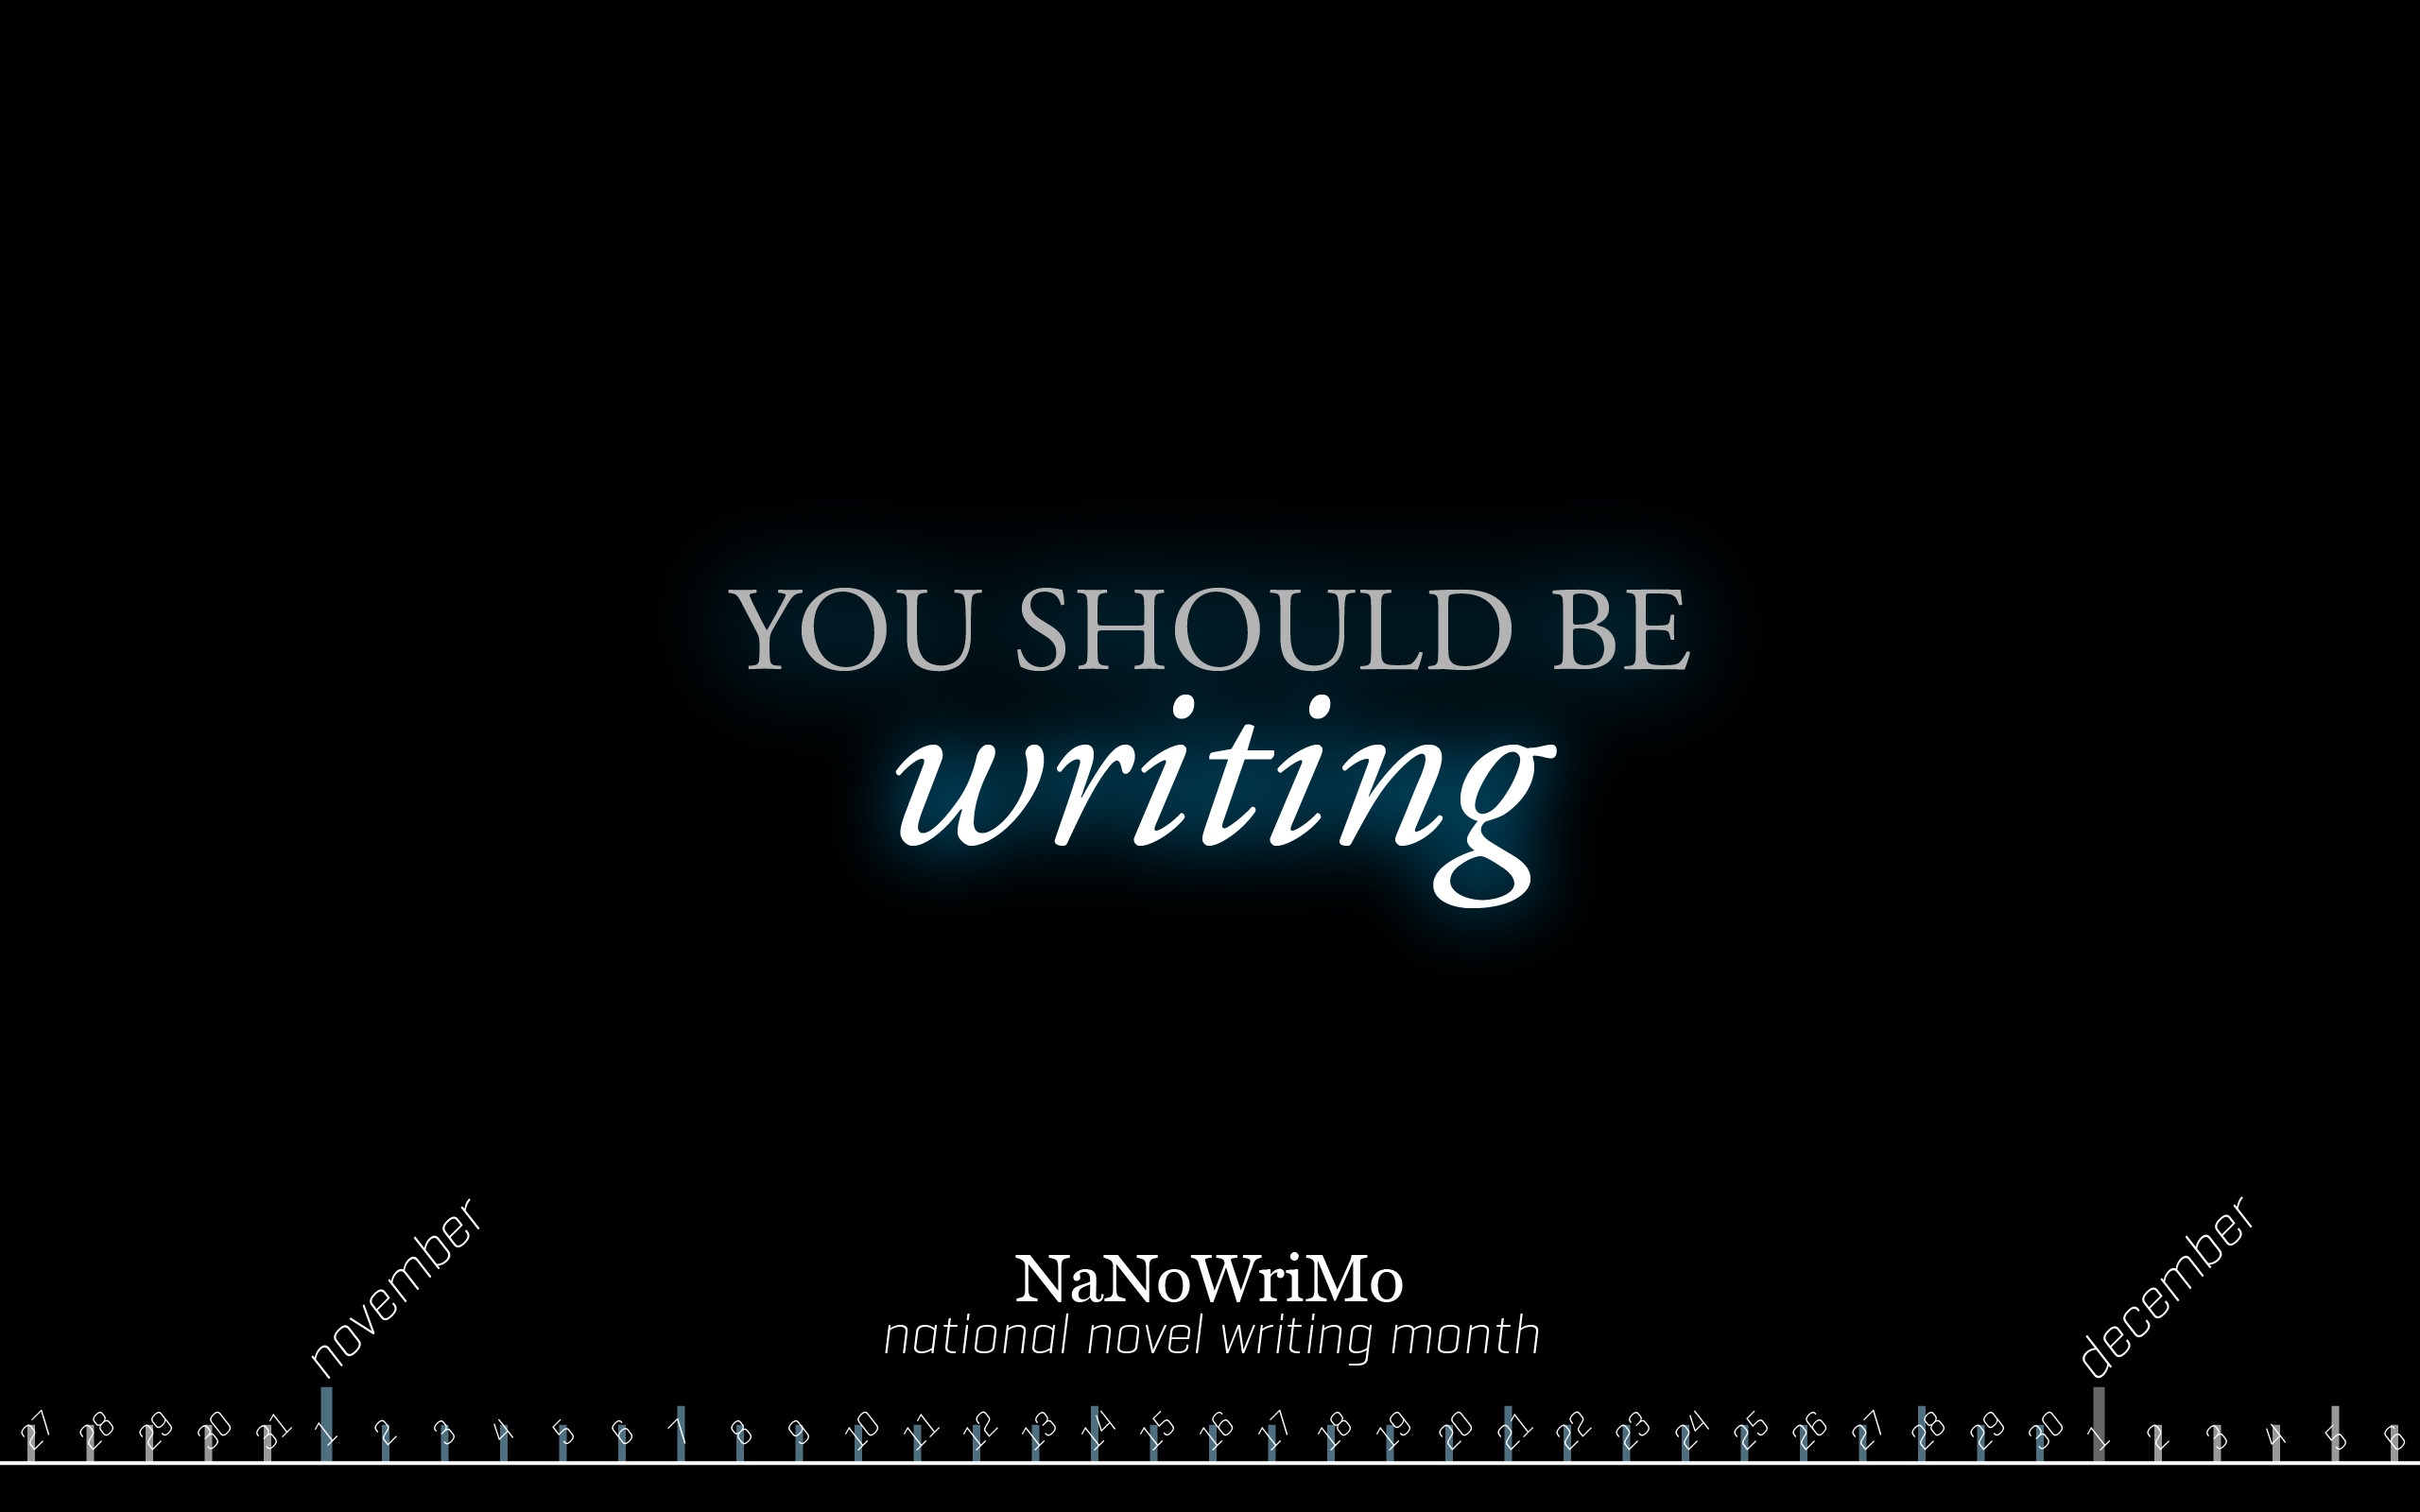 2560x1600 NaNoWriMo wallpaper by texnical-reasons NaNoWriMo wallpaper by  texnical-reasons